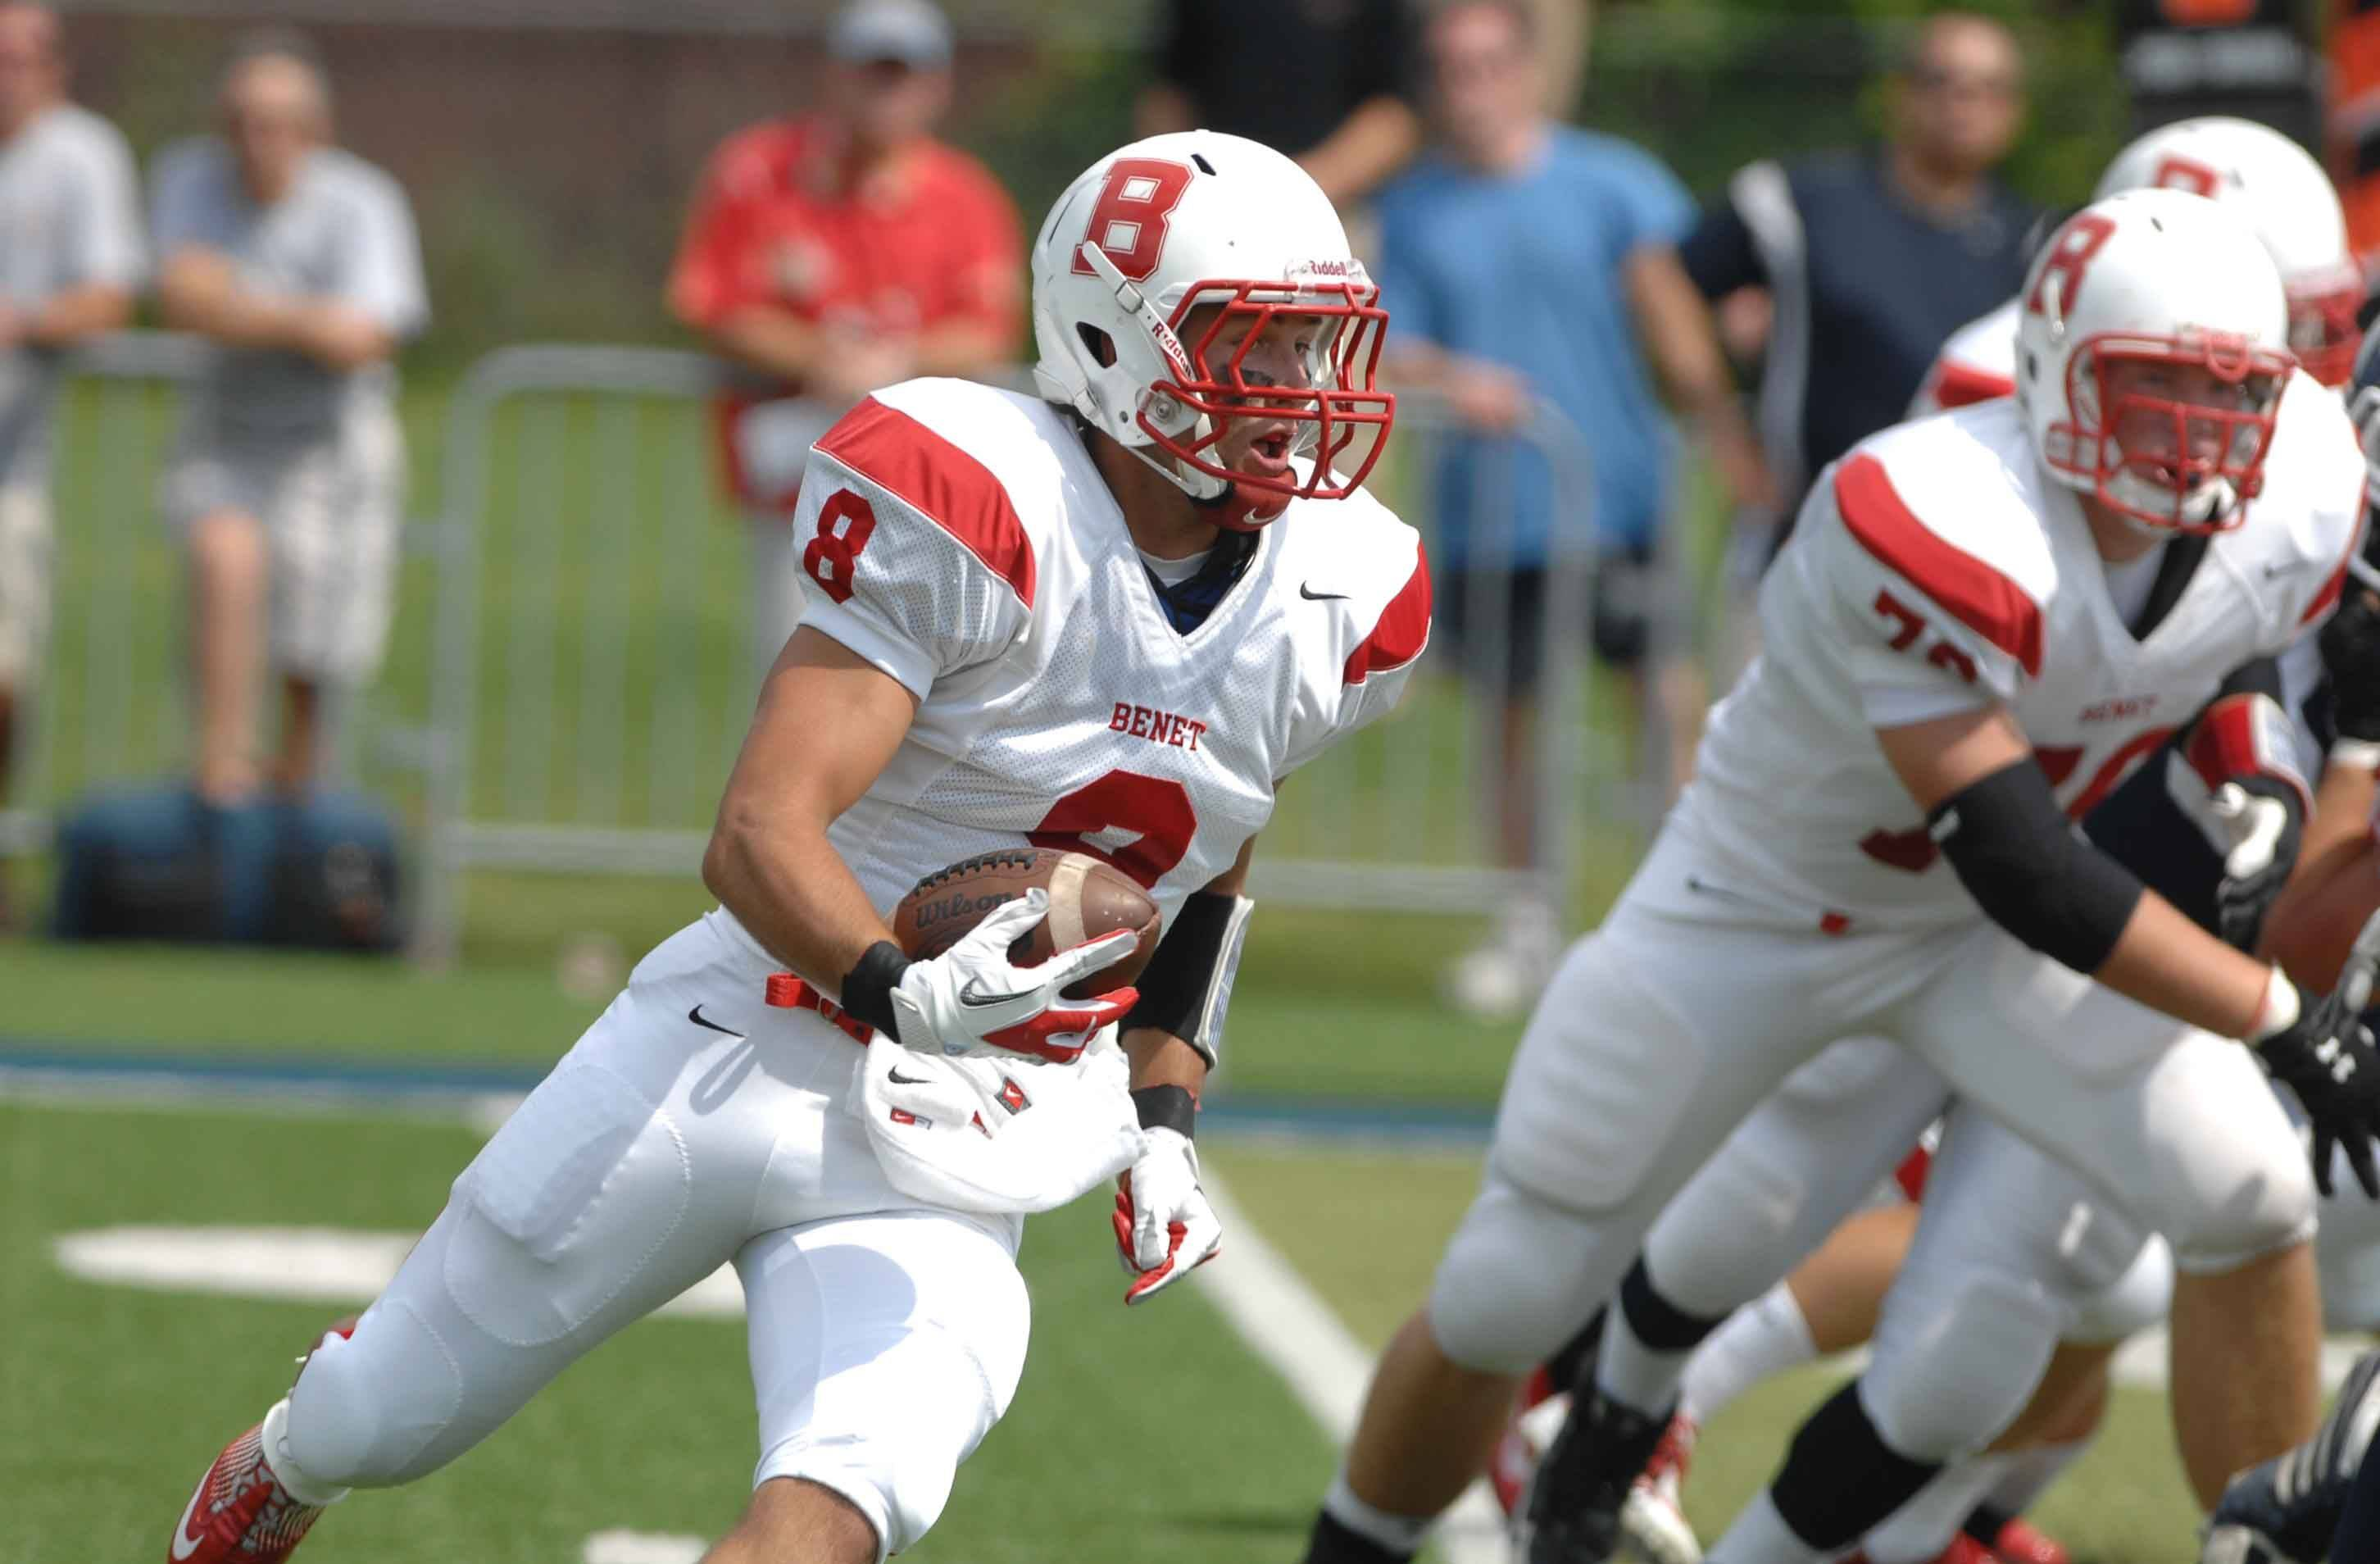 Steve Cahill ofBenet runs the ball during the Benet at Nazareth football Saturday in LaGrange Park.